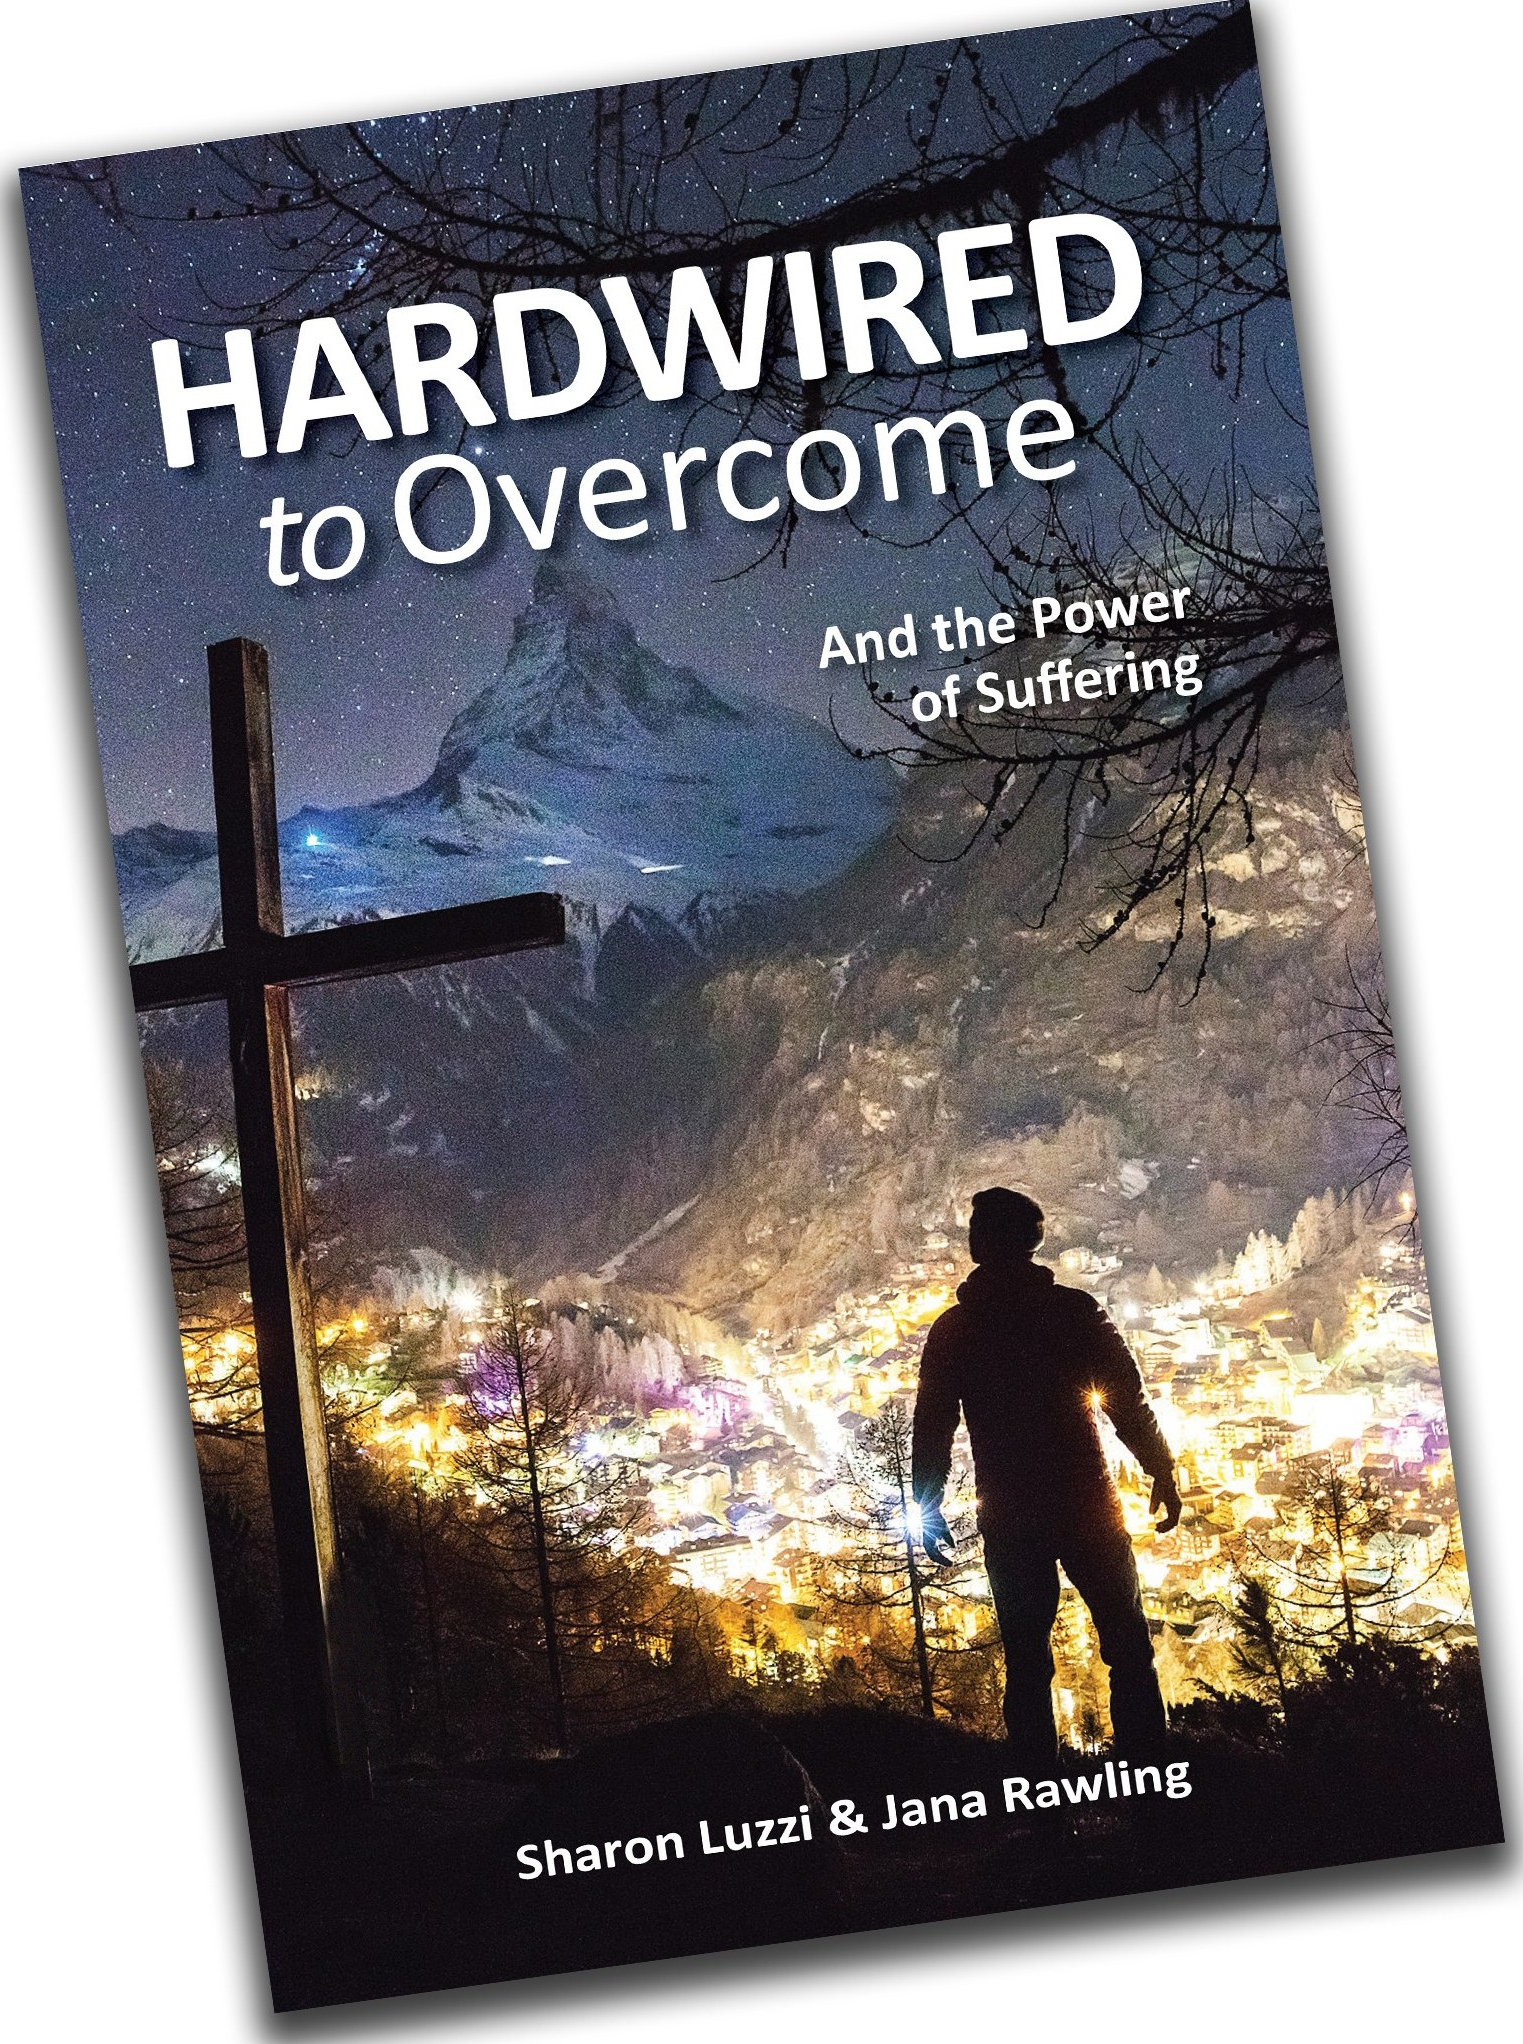 Hardwired to Overcome